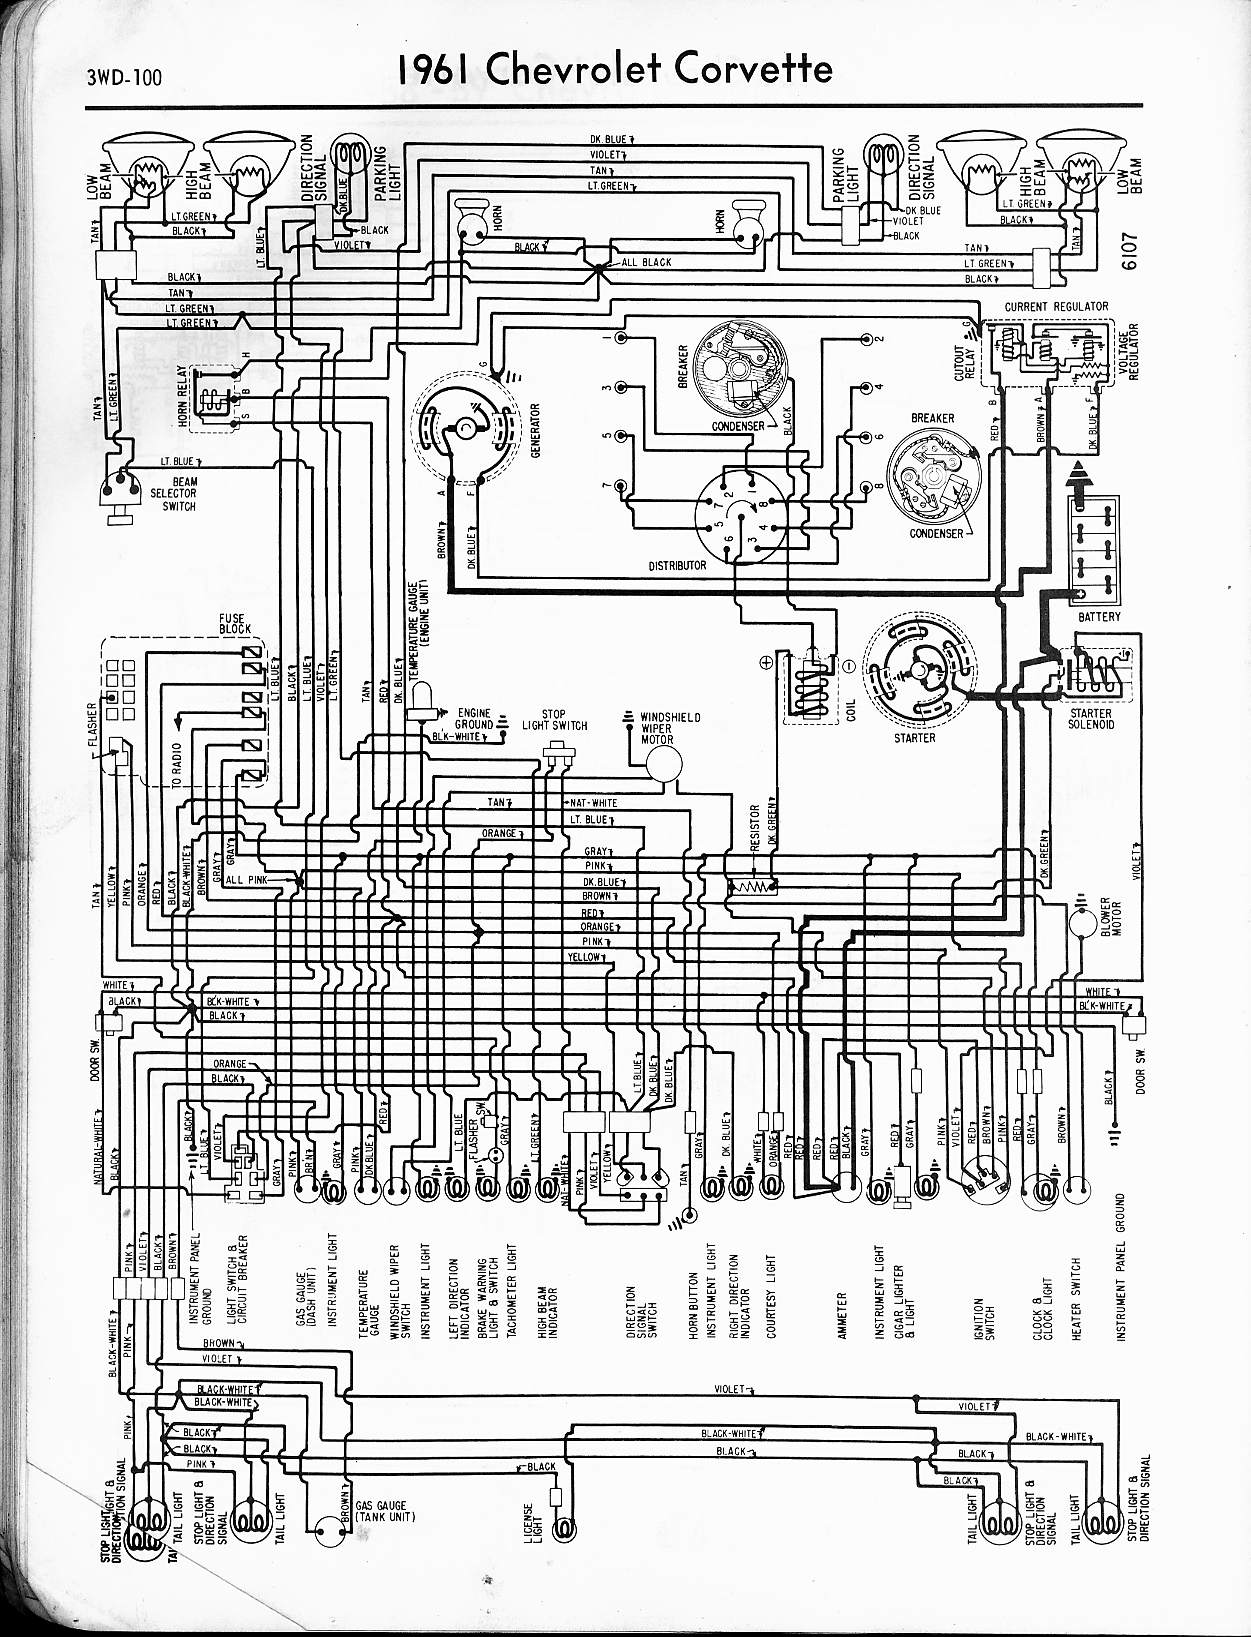 Ignition Switch Wiring Diagram Chevy Impala Library 1963 Wire Harness 1961 Schemes 63 Turn Signal